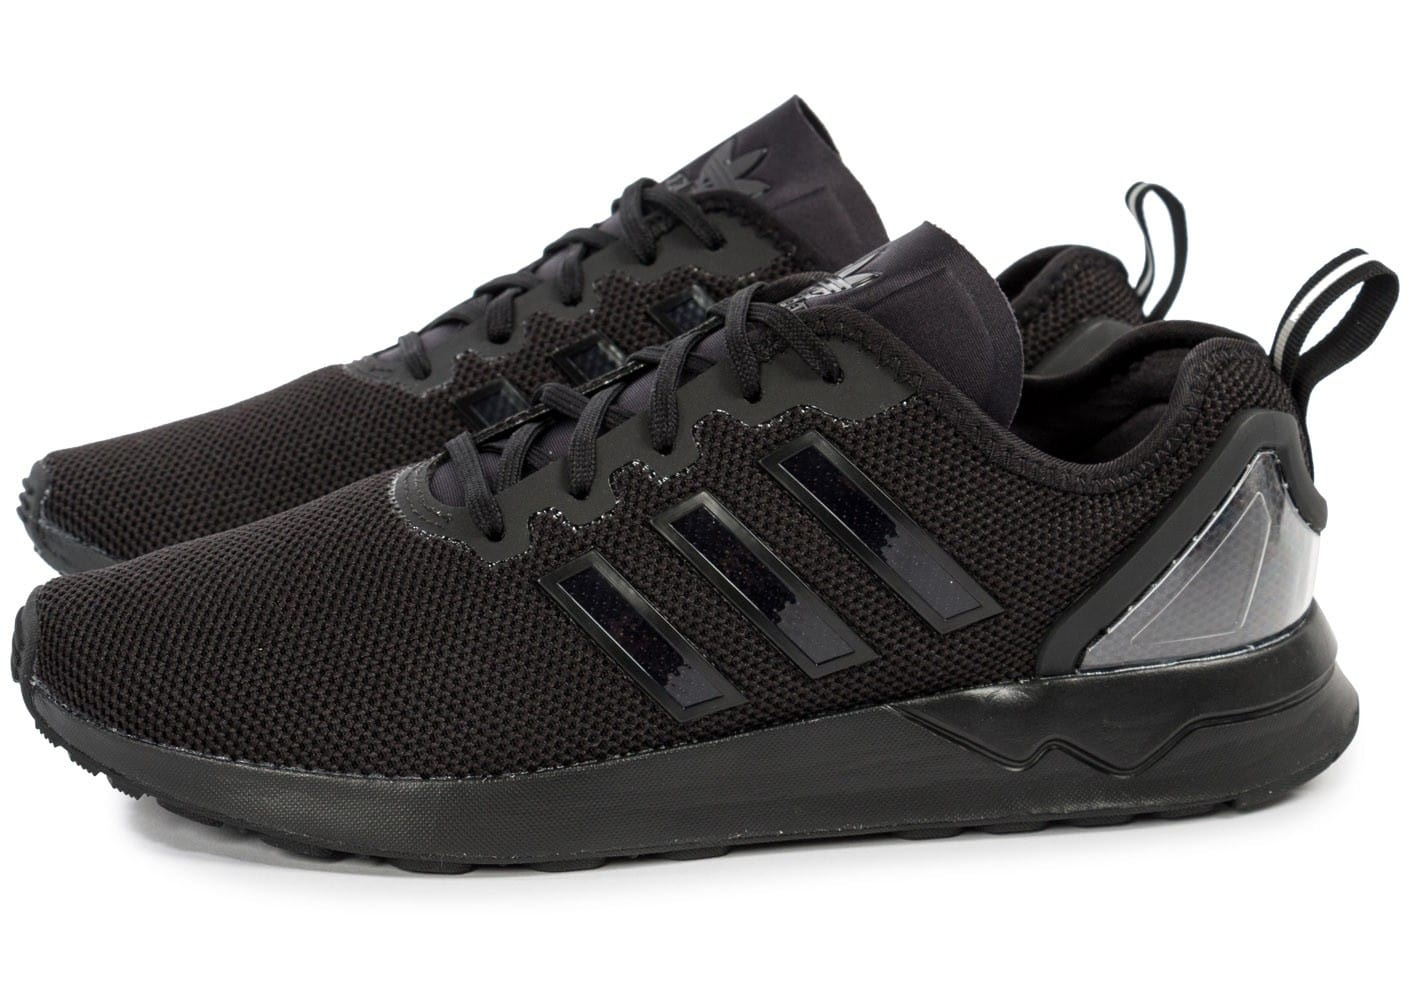 factory outlets coupon codes sneakers adidas Zx Flux ADV Racer noire - Chaussures Baskets homme ...